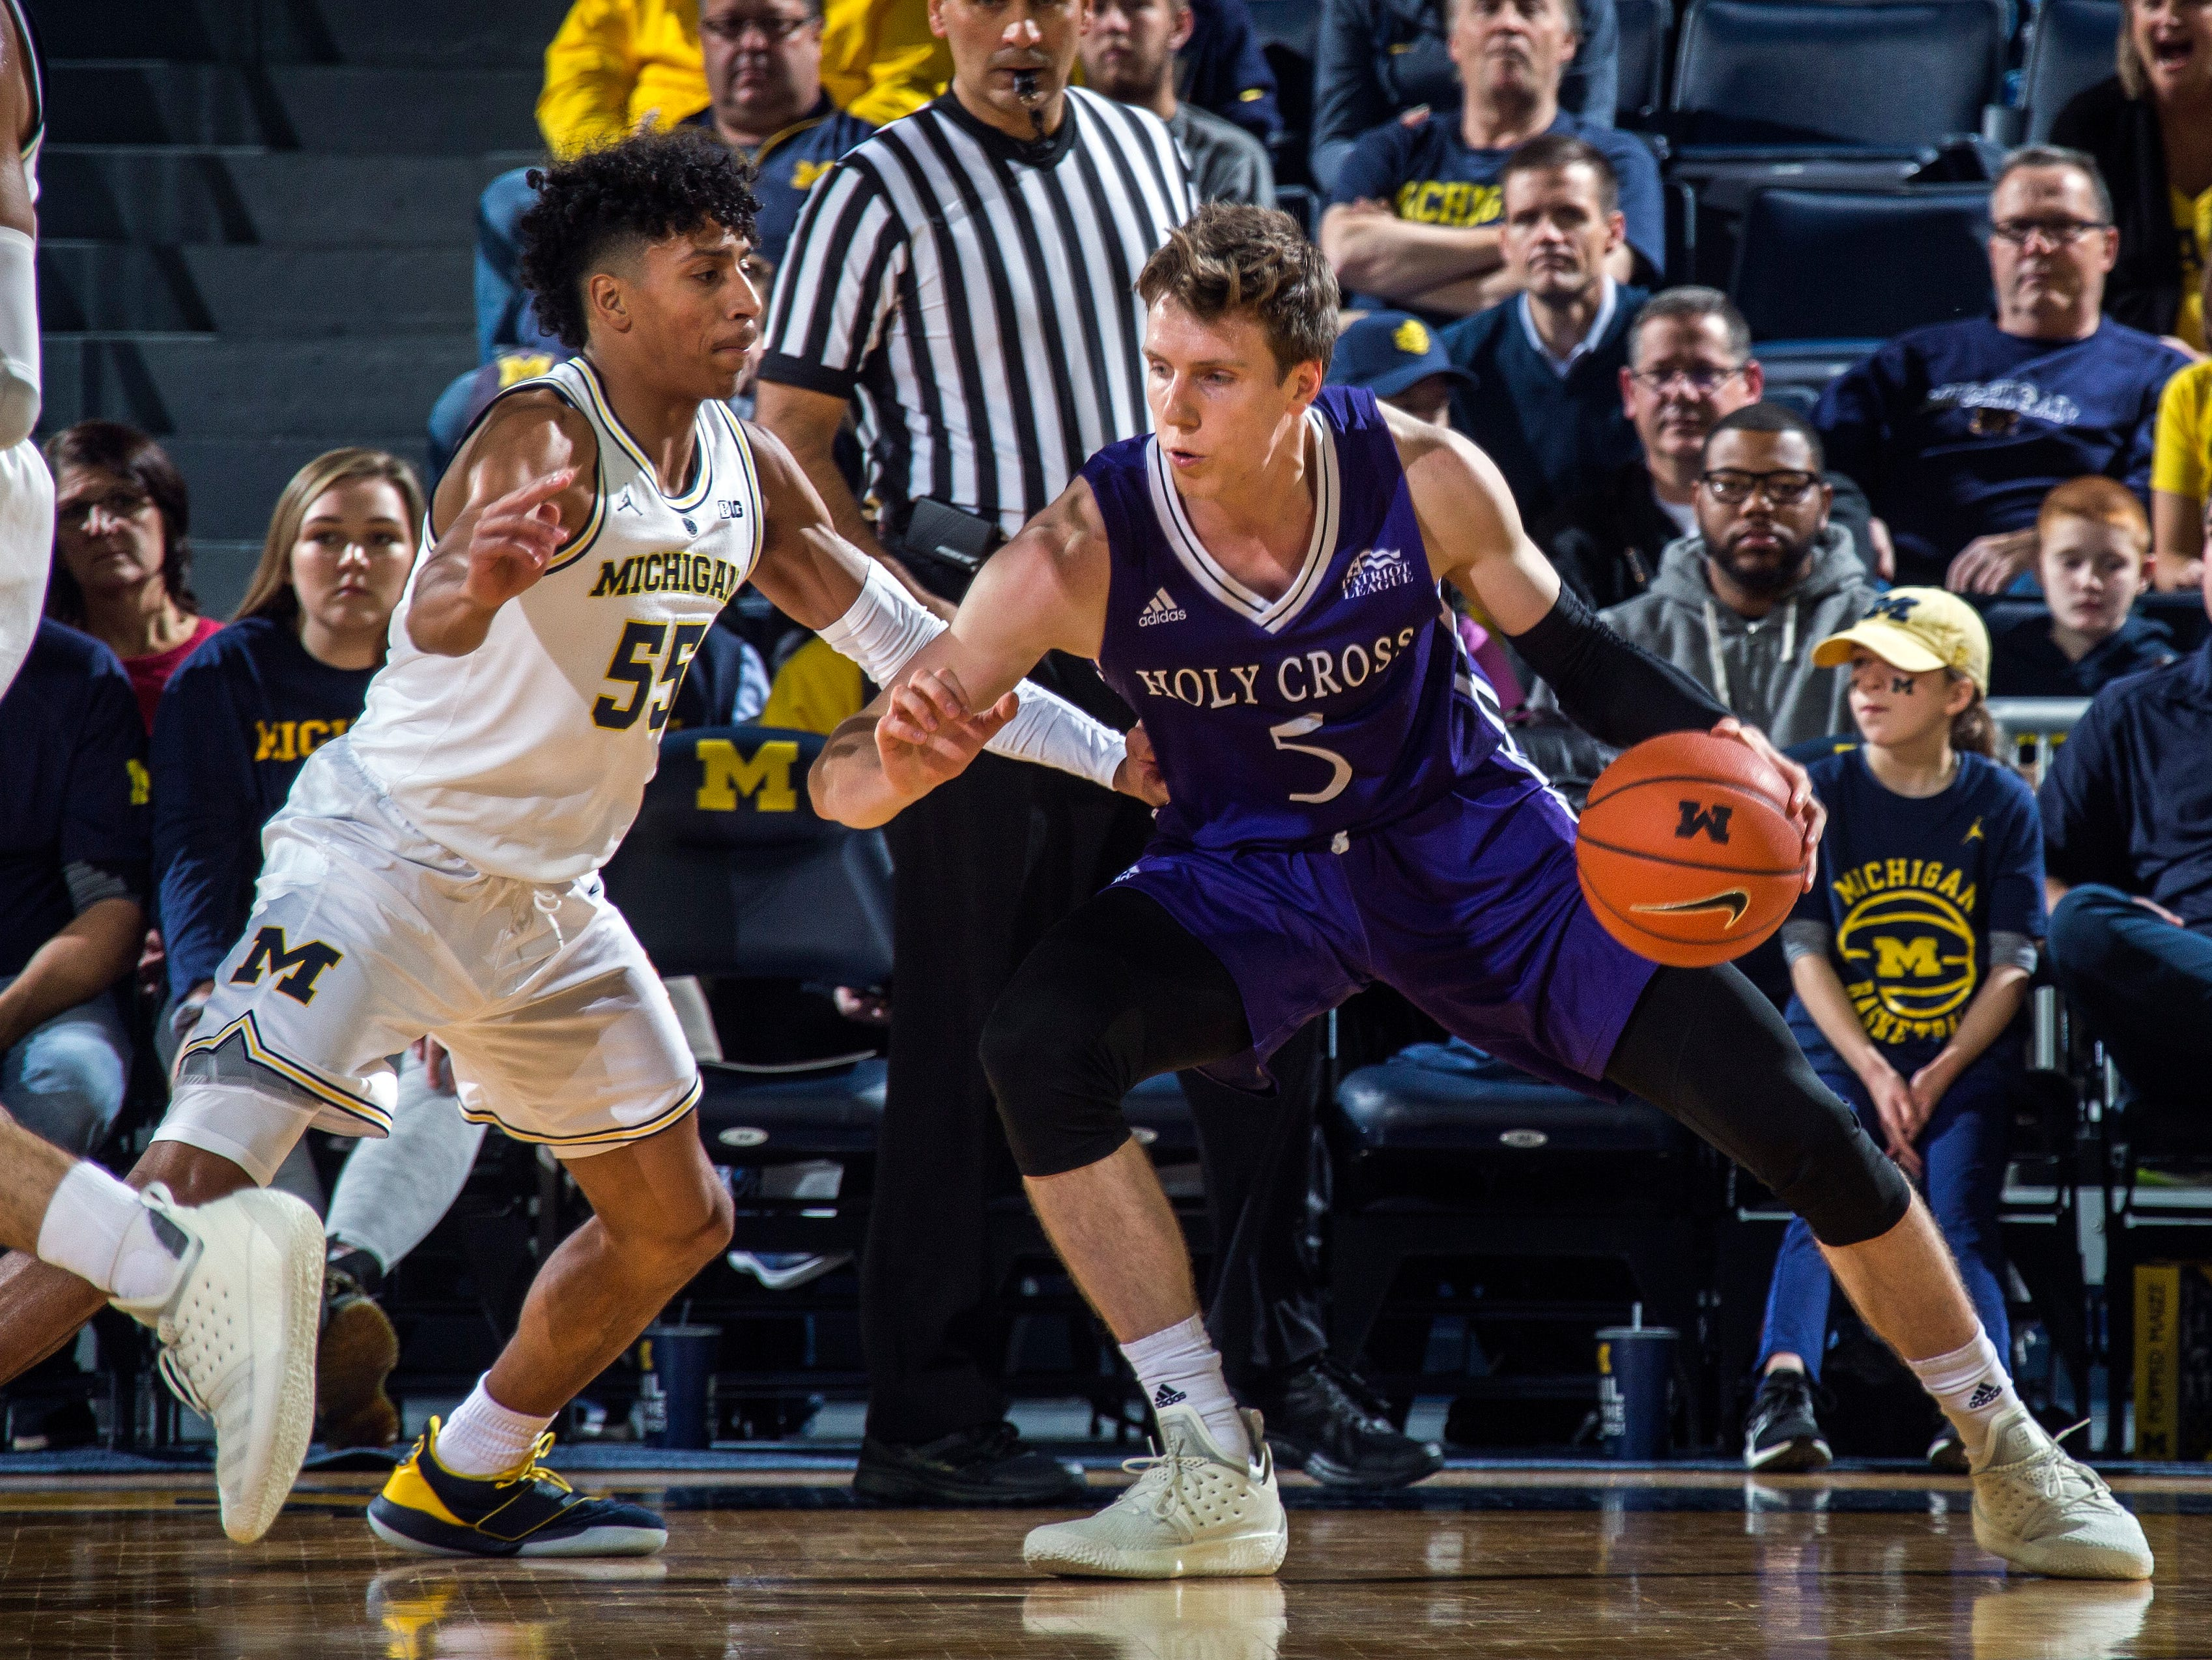 Michigan guard Eli Brooks (55) defends Holy Cross forward Connor Niego (5) in the second half of an NCAA college basketball game at Crisler Center in Ann Arbor, Mich., Saturday, Nov. 10, 2018. Michigan won 56-37. (AP Photo/Tony Ding)